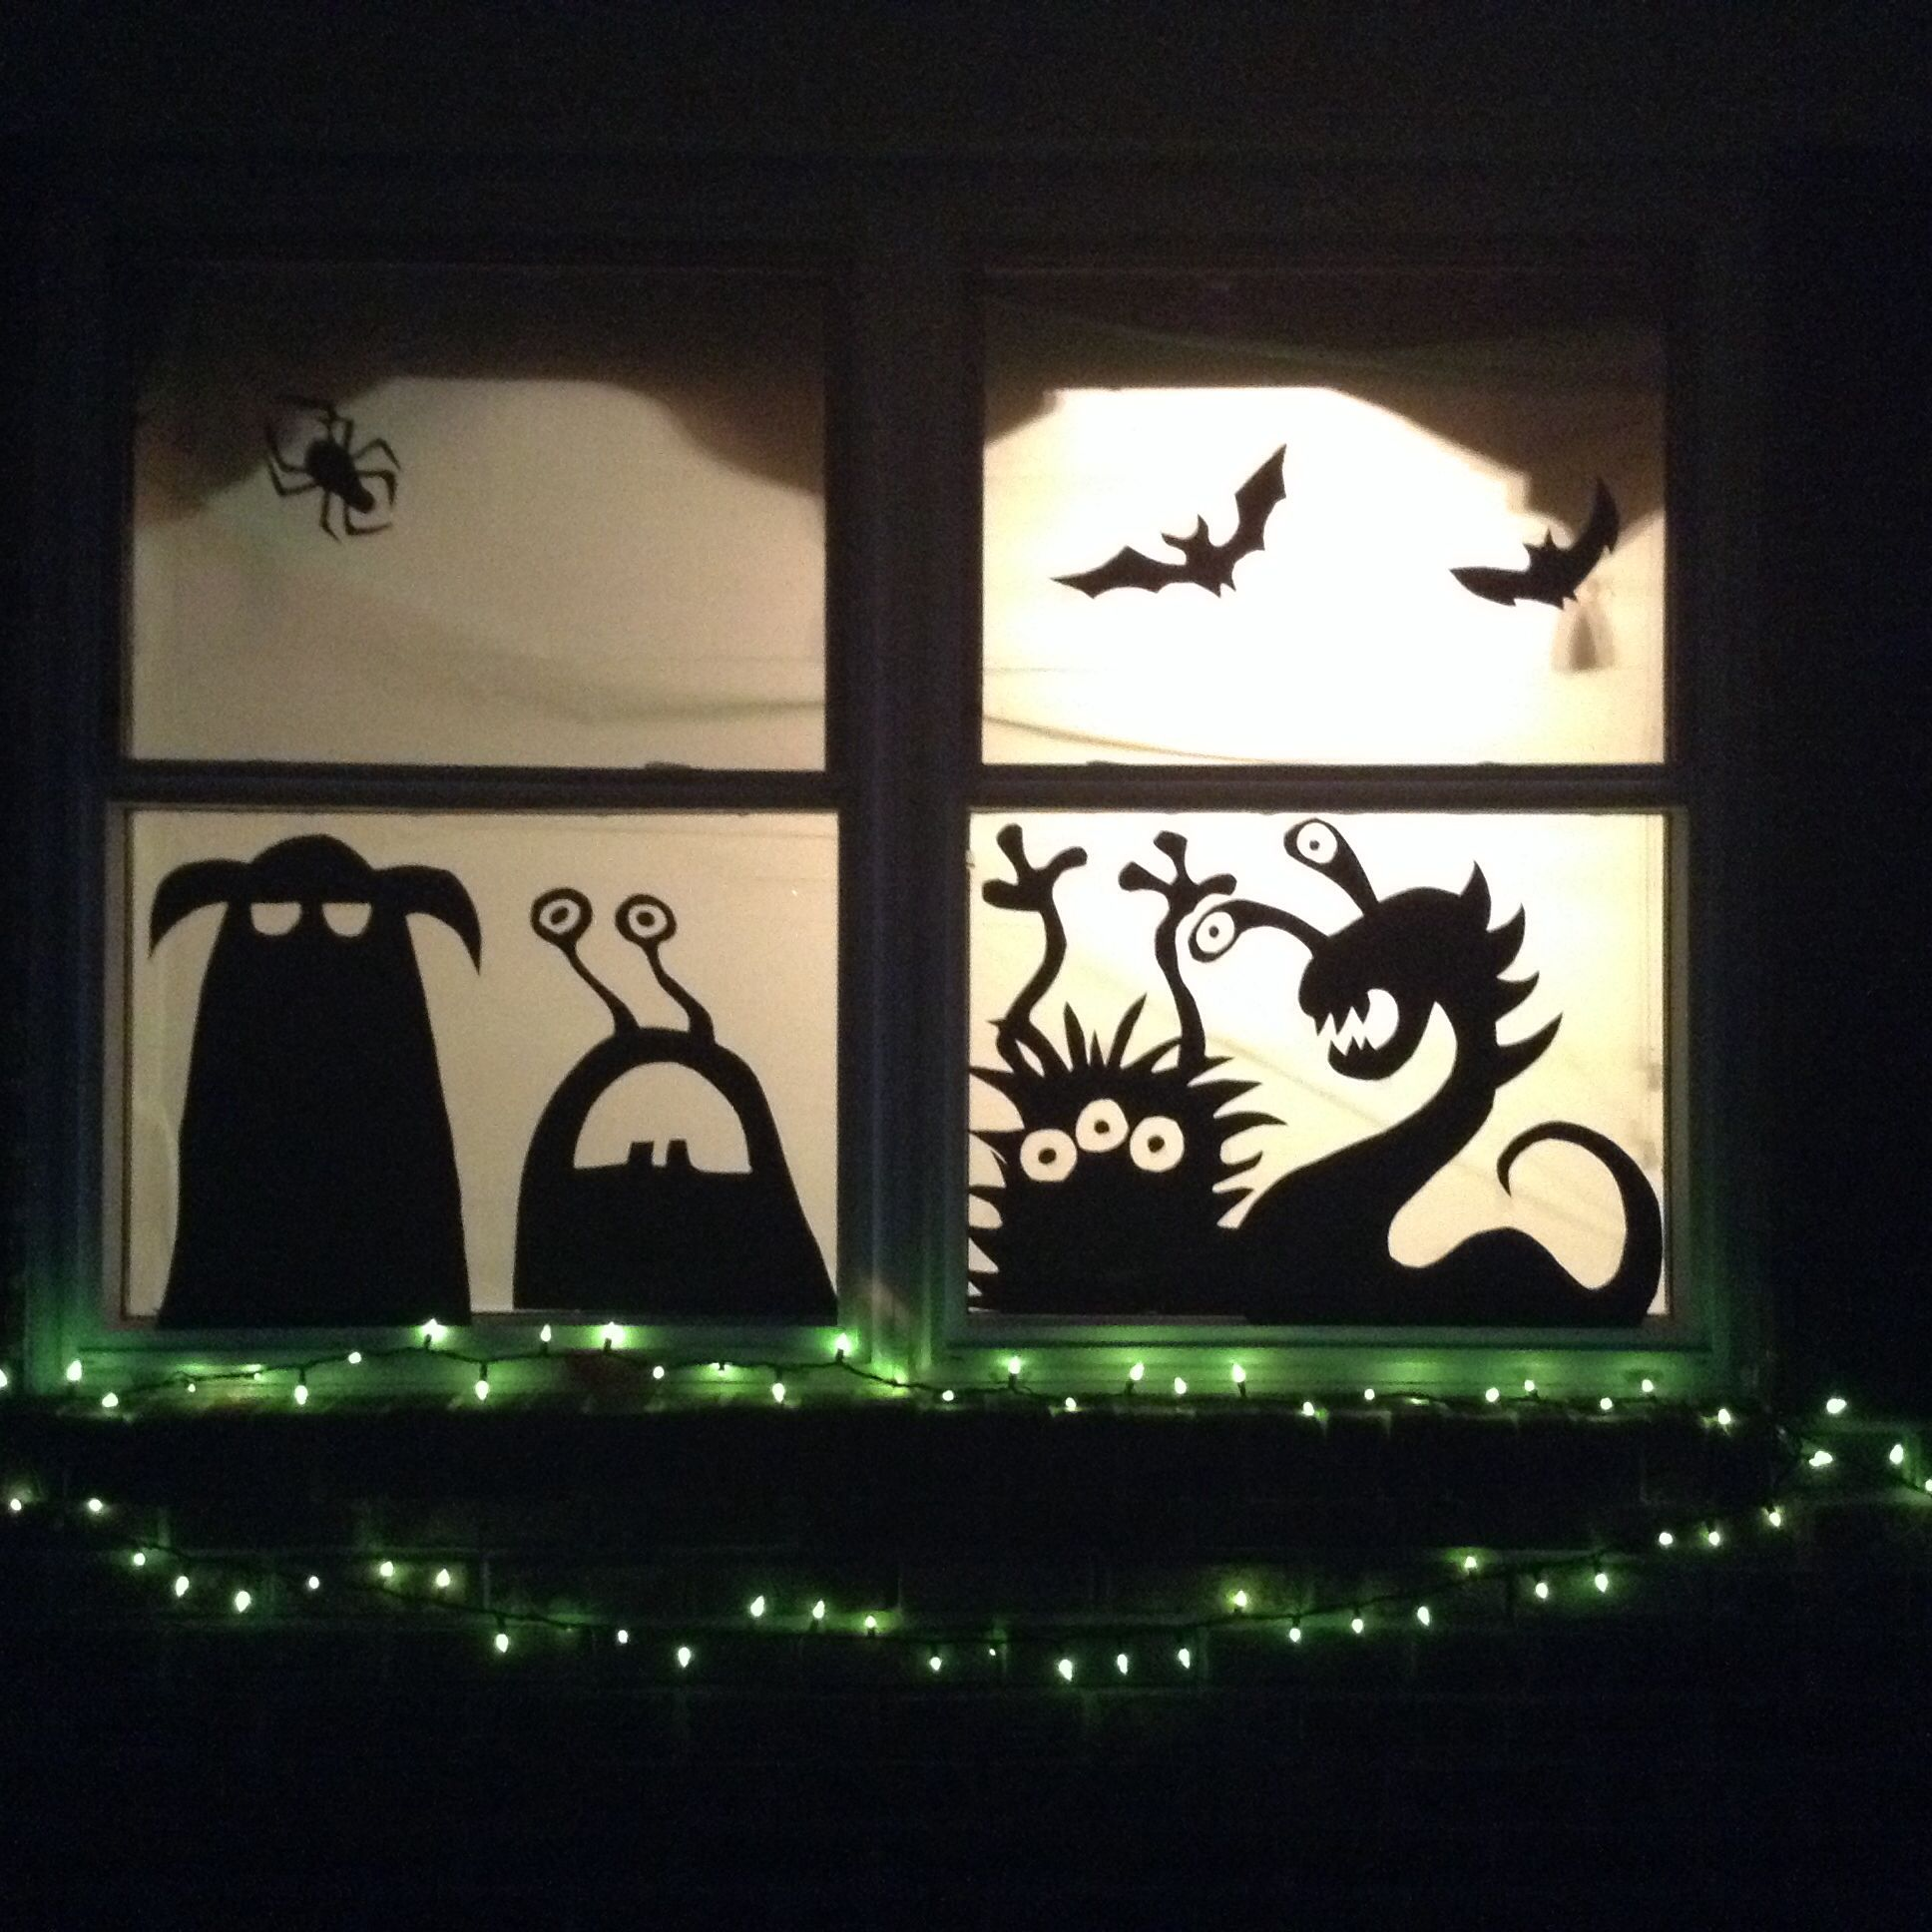 Halloween decor - monster silhouettes Déco DIY Halloween - halloween window decor